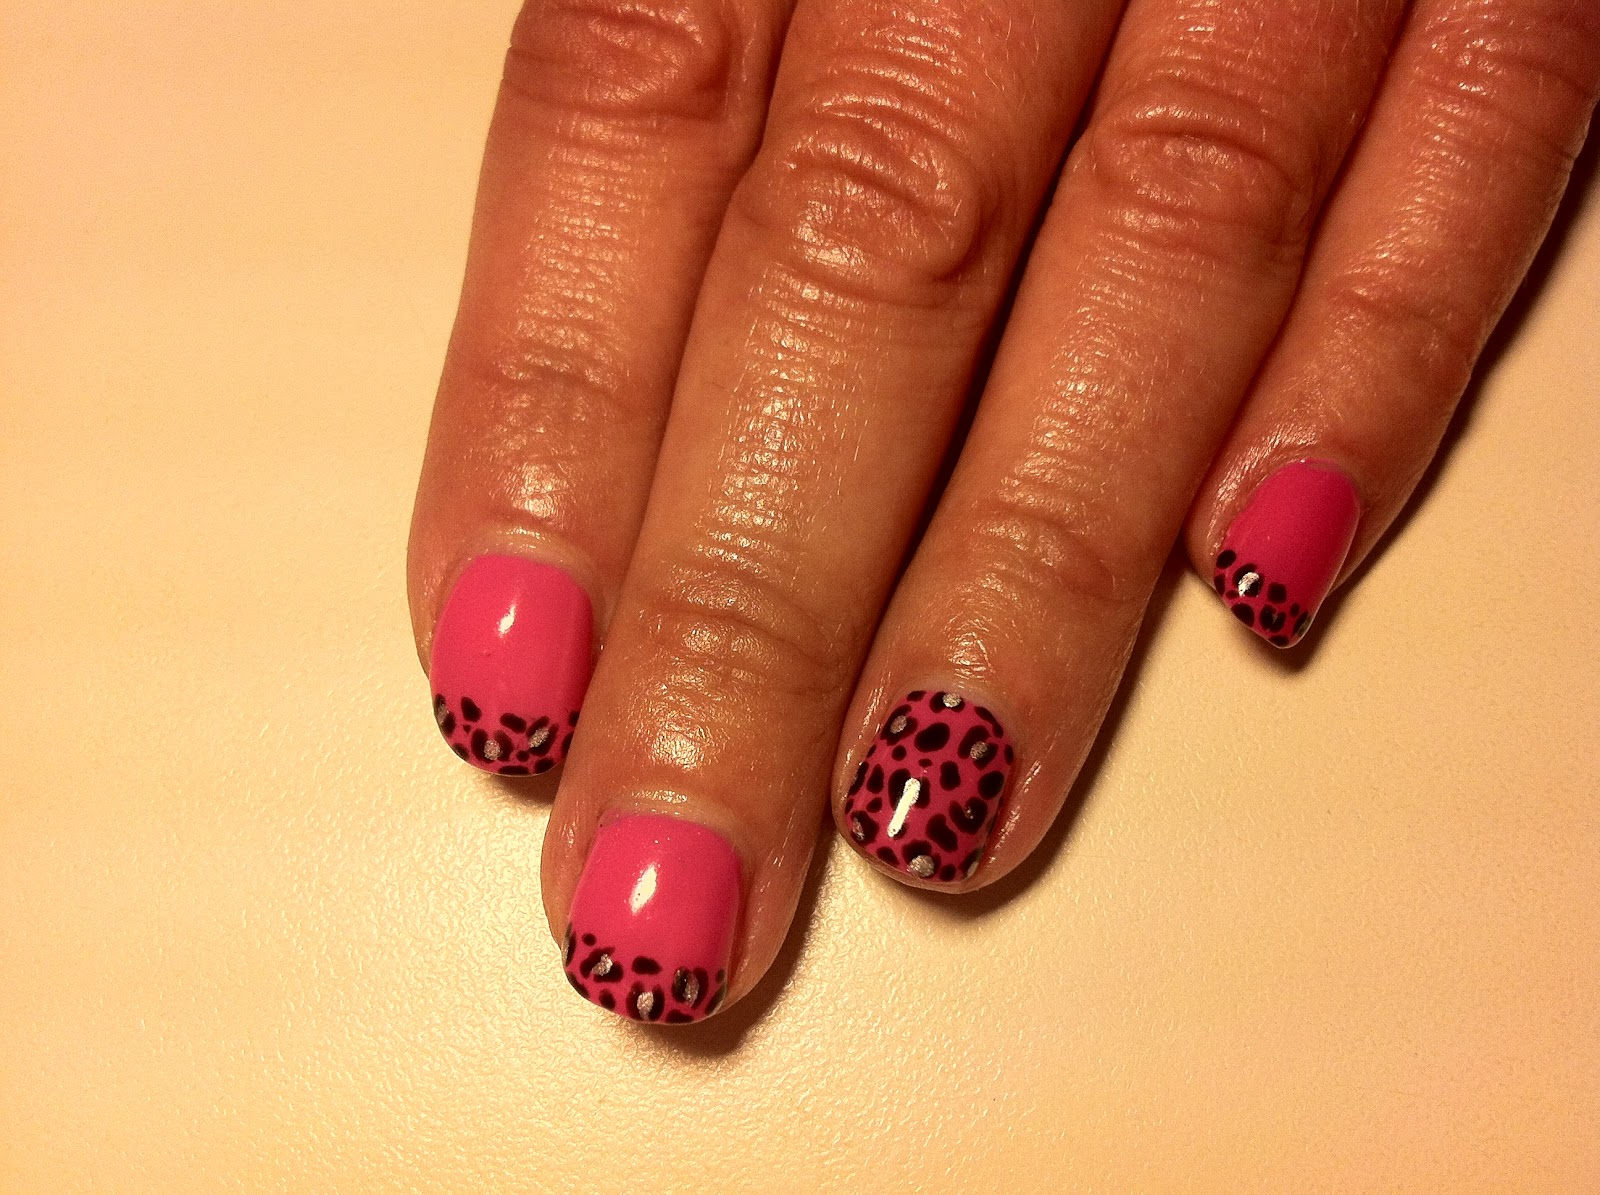 Let me introduce you to Hot Pop Pink with leopard print nail art